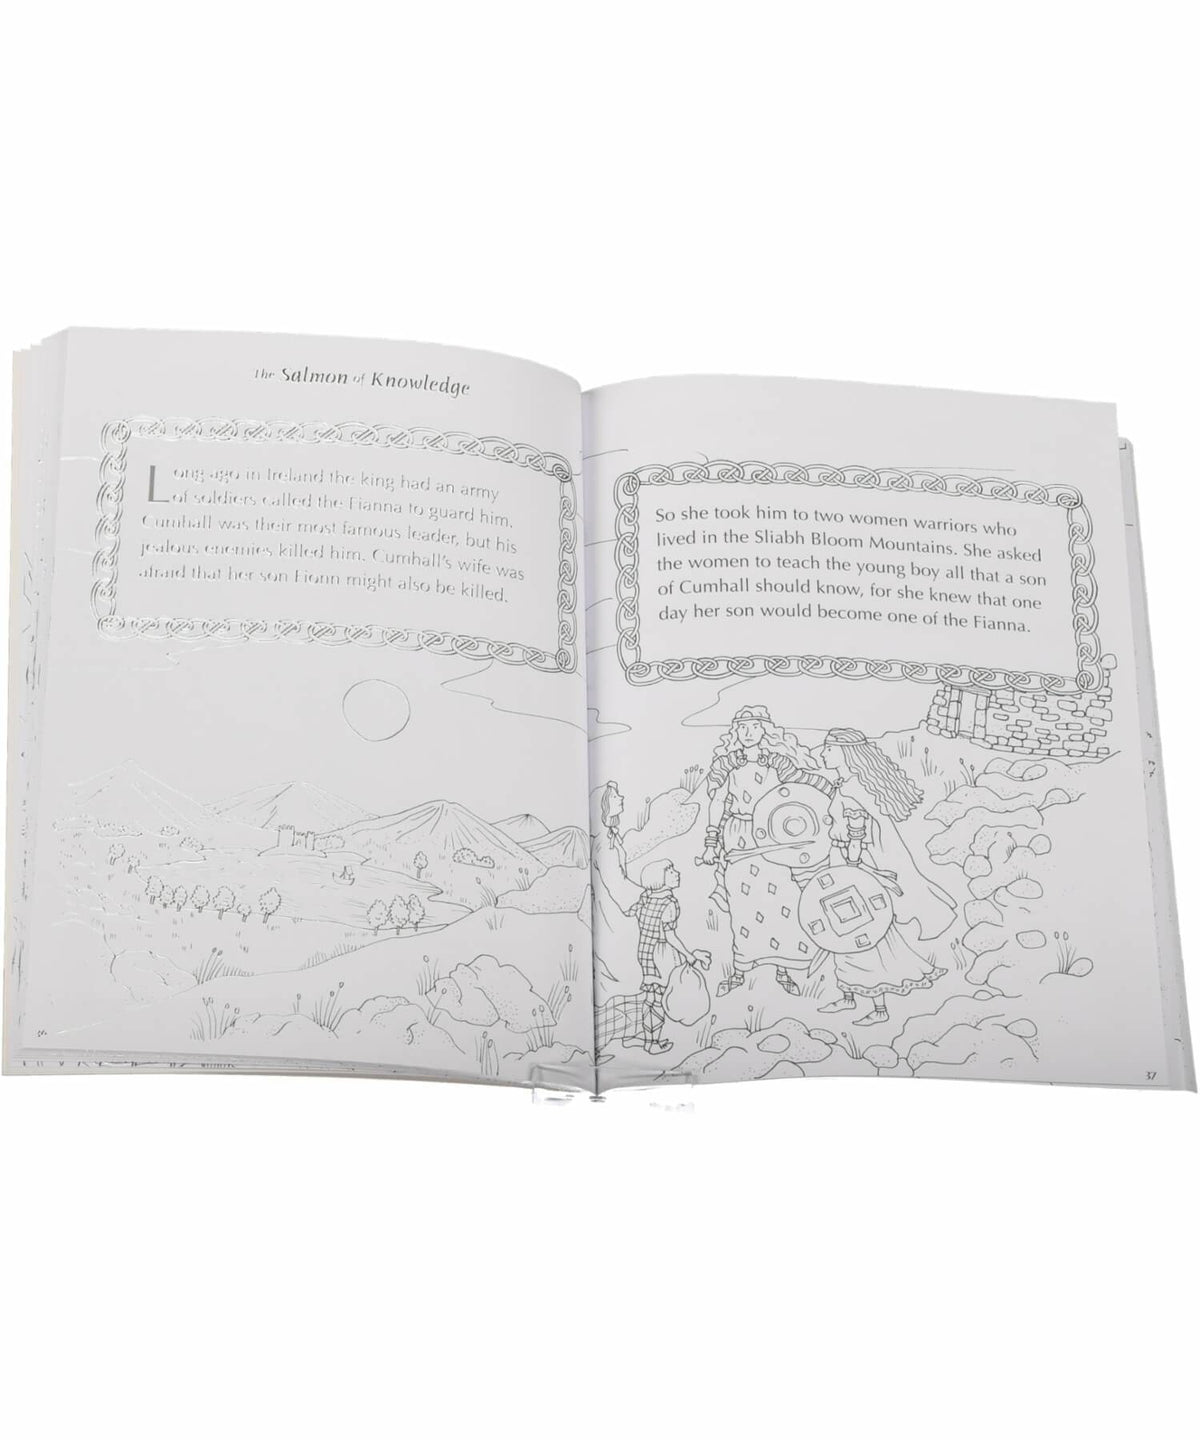 Irish Legends Colouring Book Gill & MacMillan Books